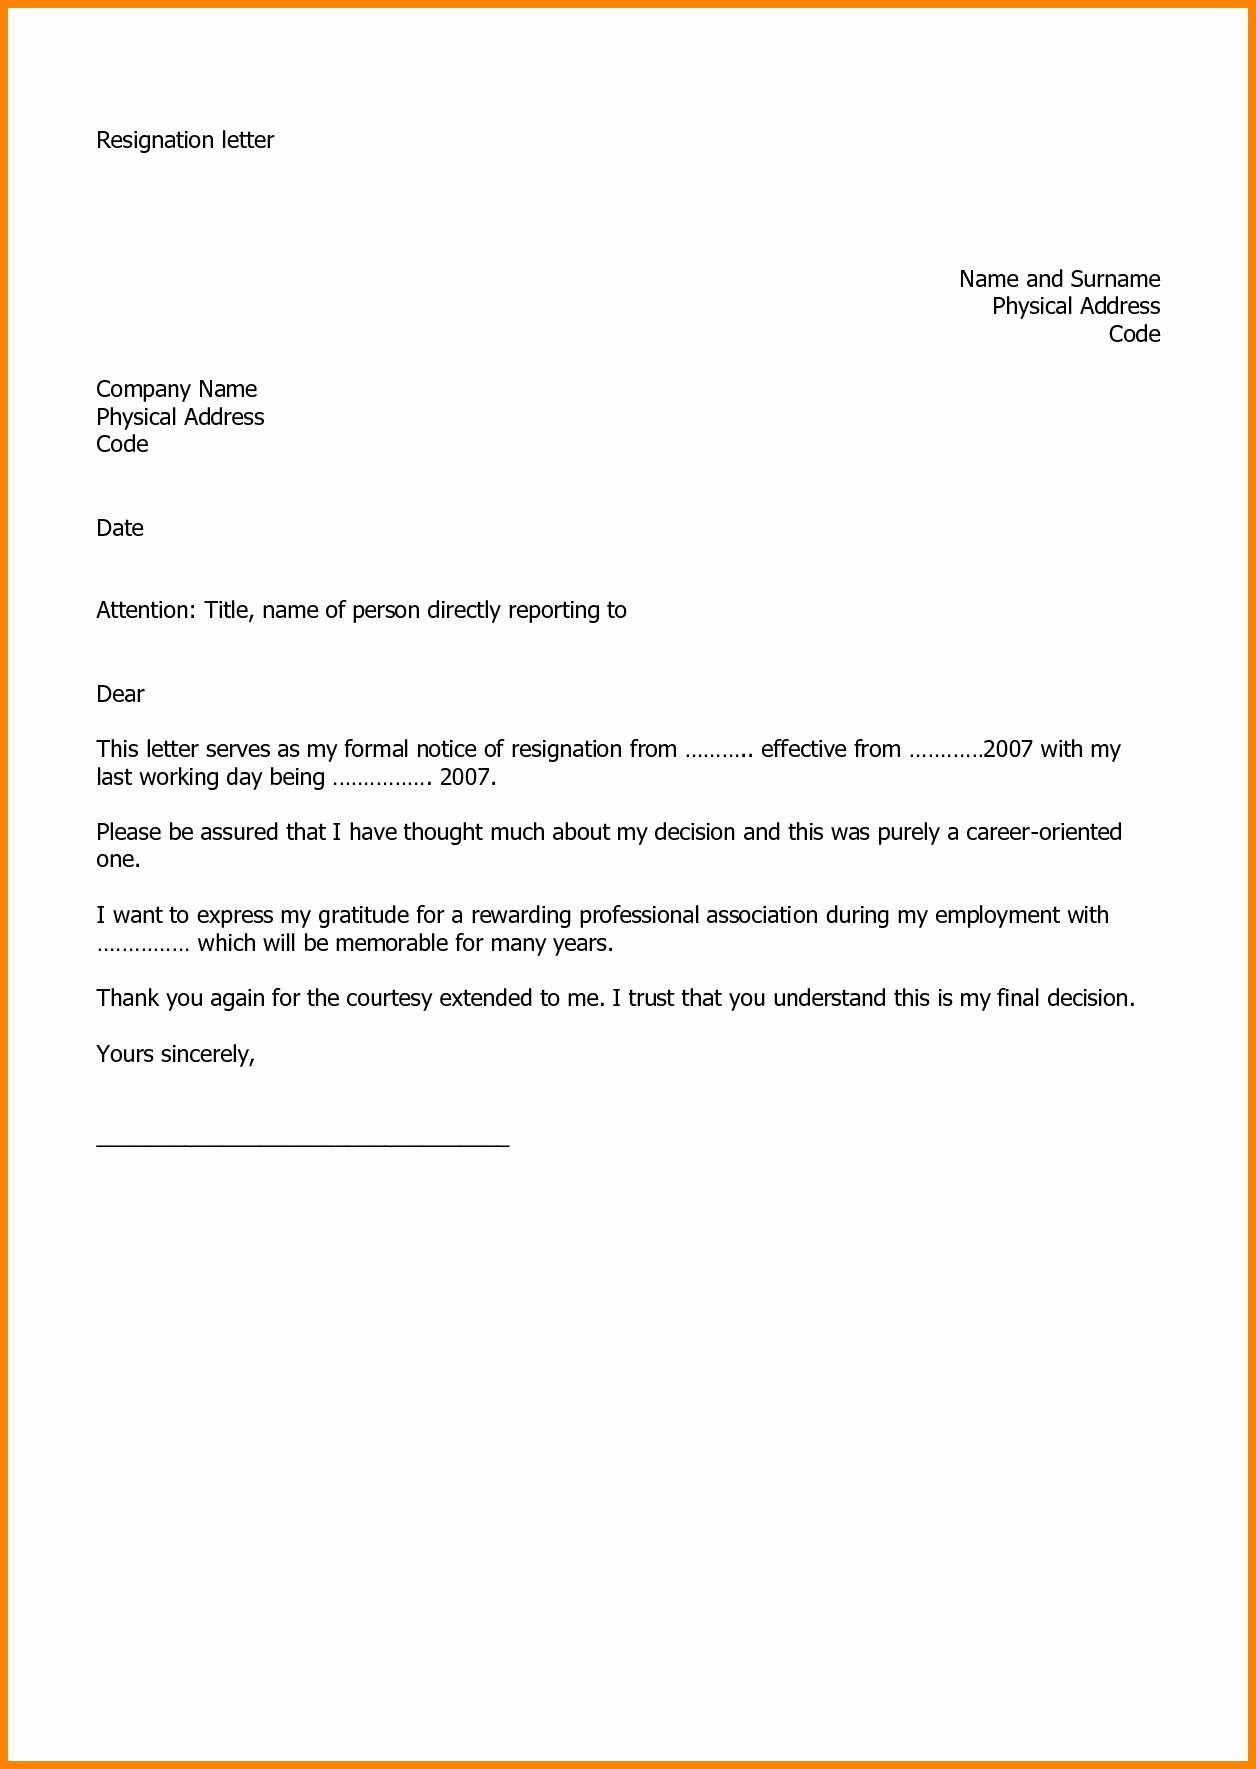 Letter Of Resignation Template Word 2007 Awesome Valid Resignation Letter format Word File Download